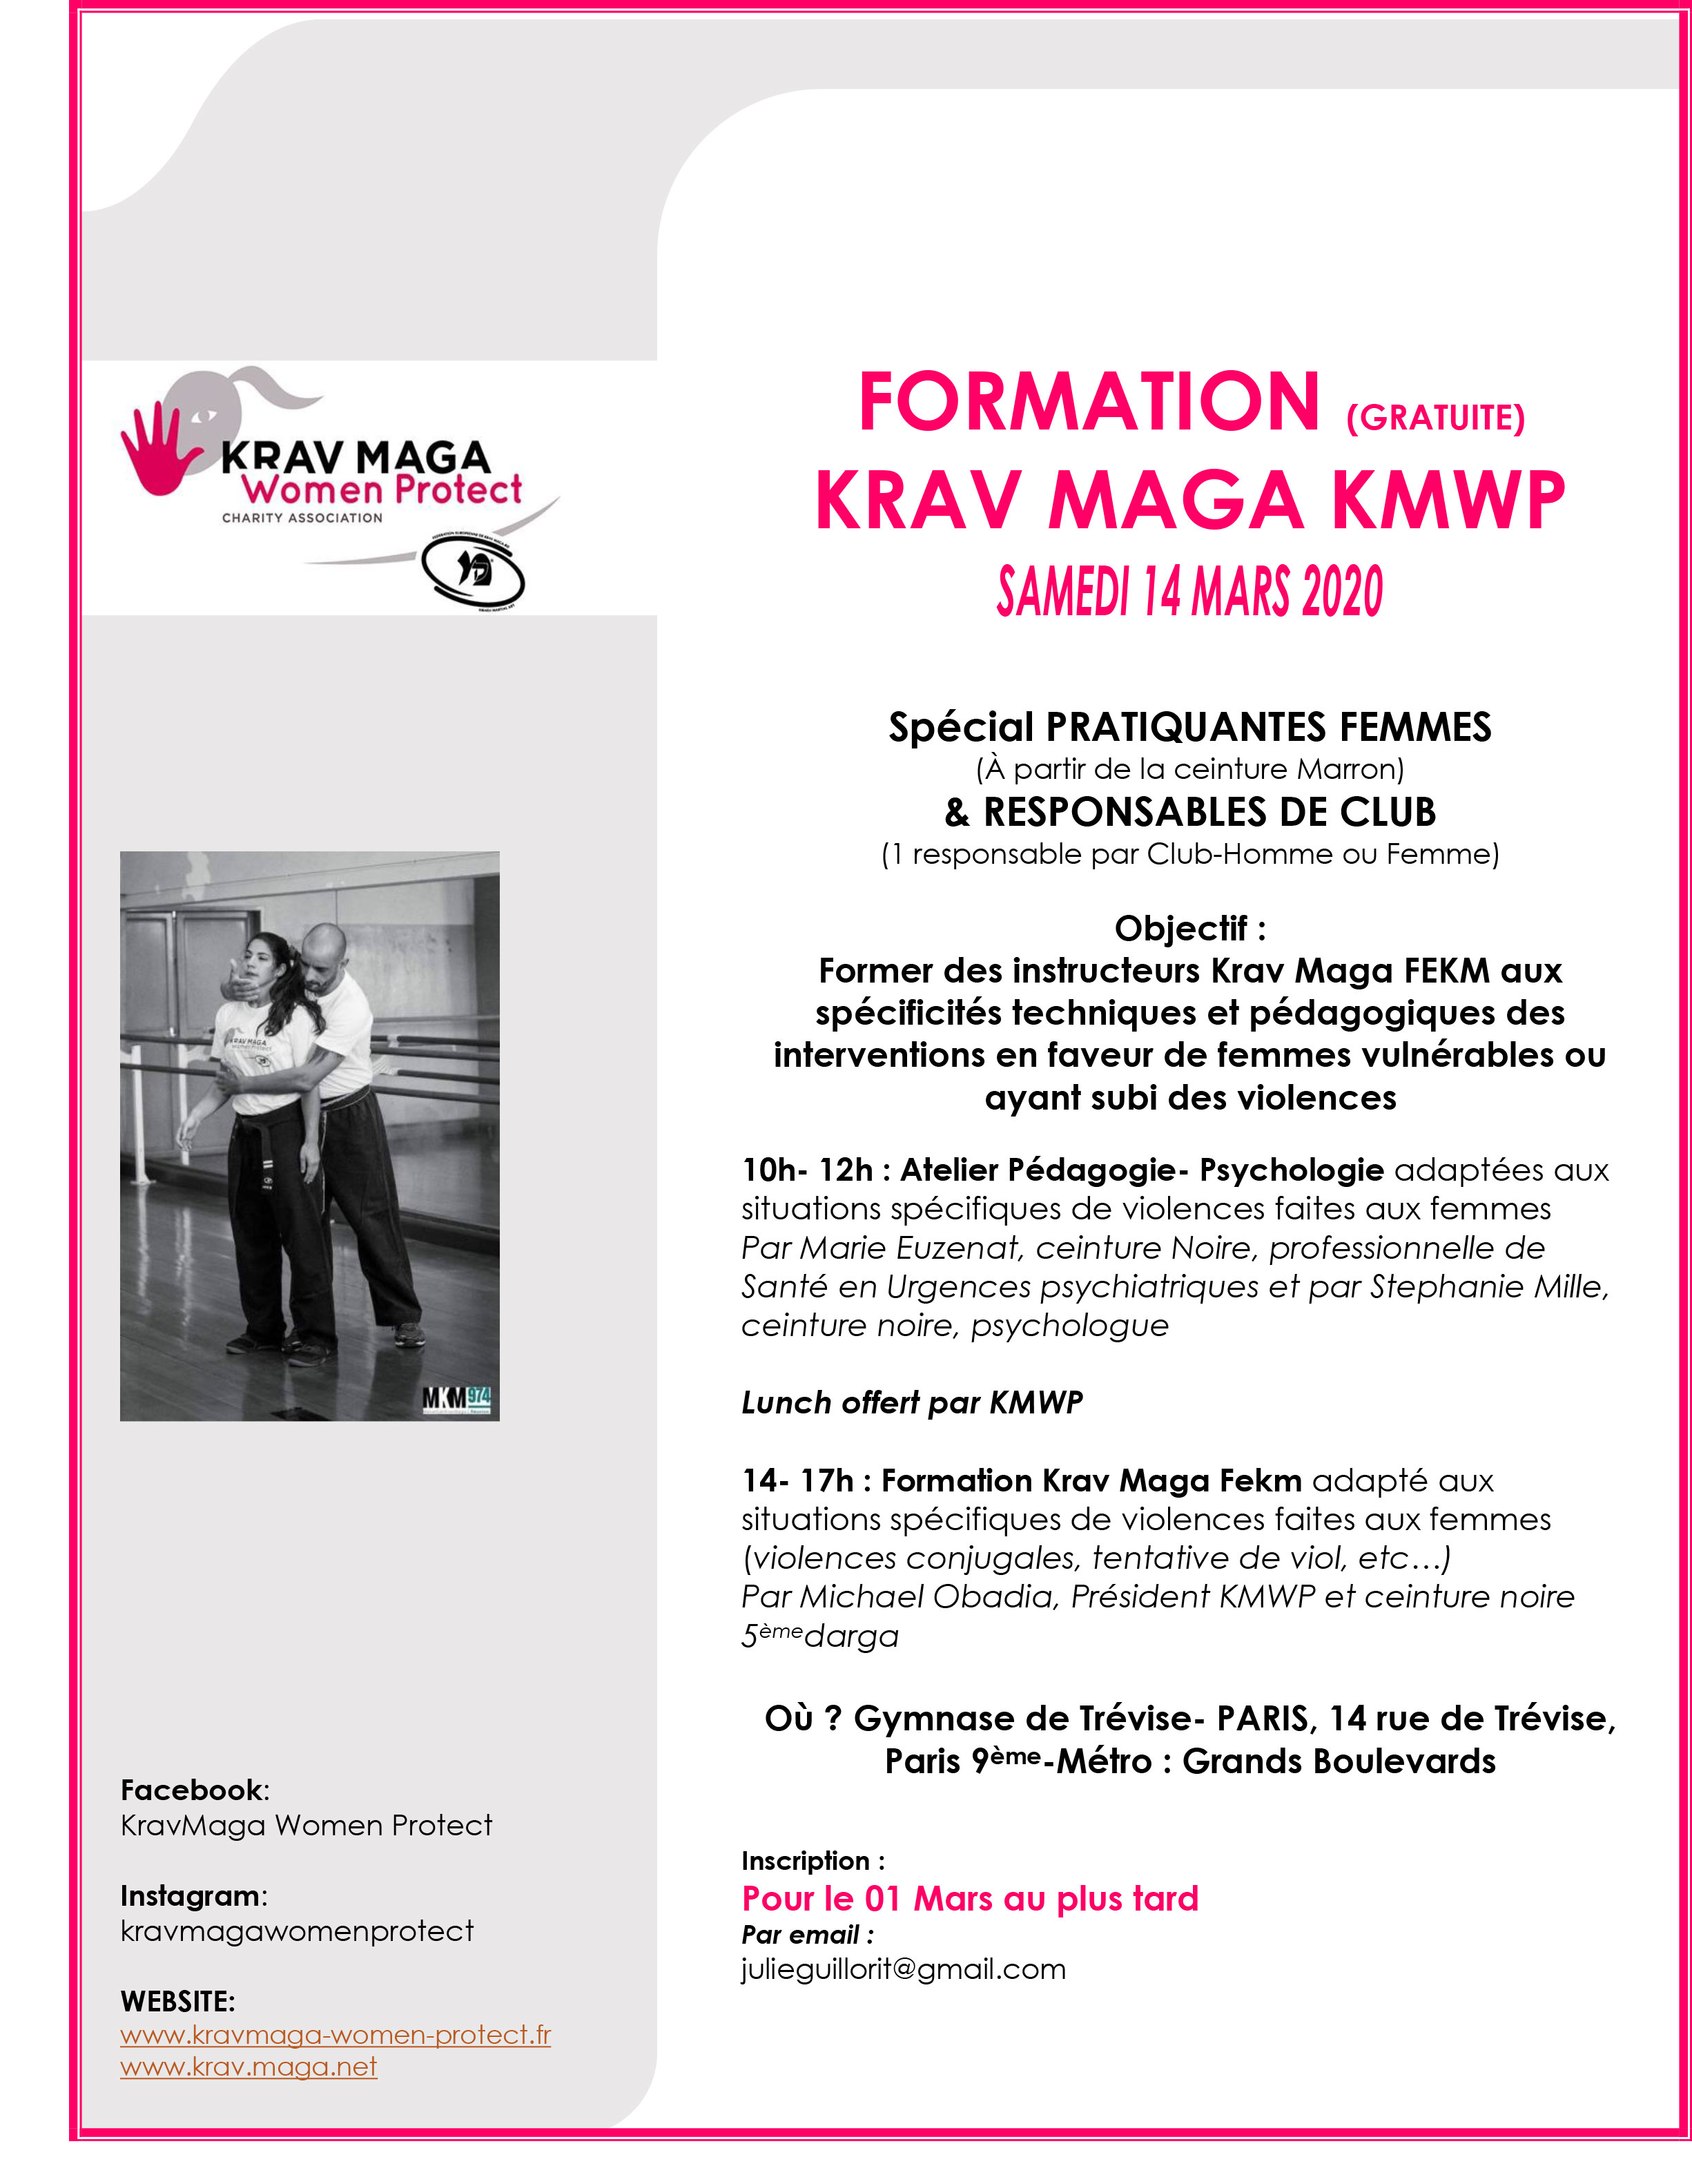 KMWP journee formation 14 mars 2020